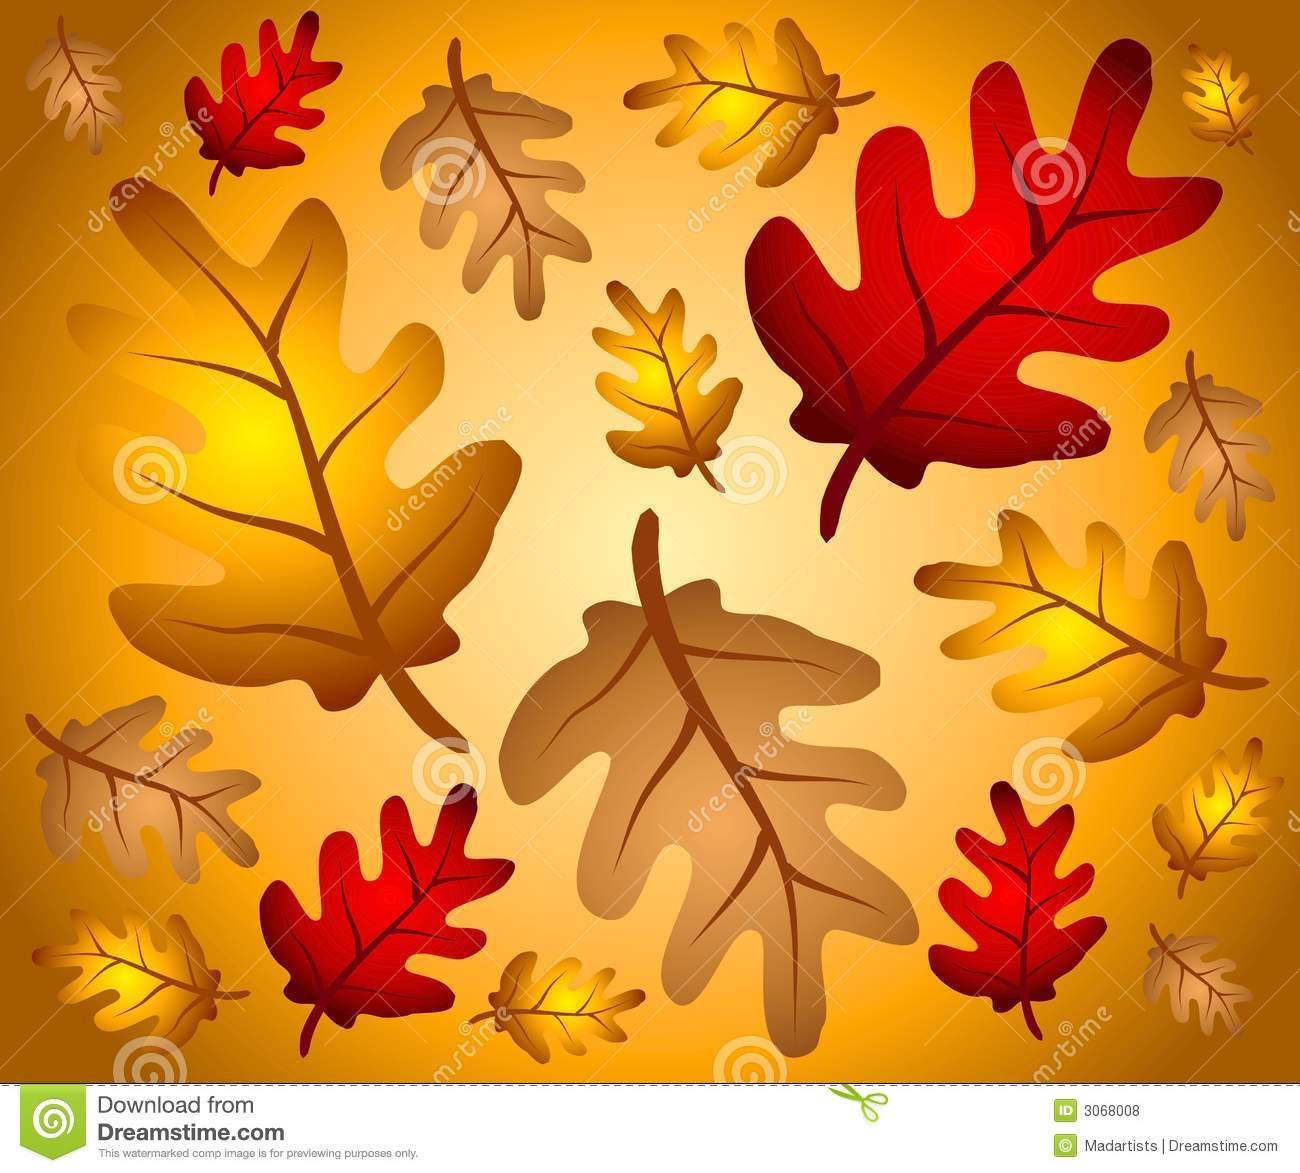 Of Autumn Leaves In Red Gold And Brown As A Background Pattern